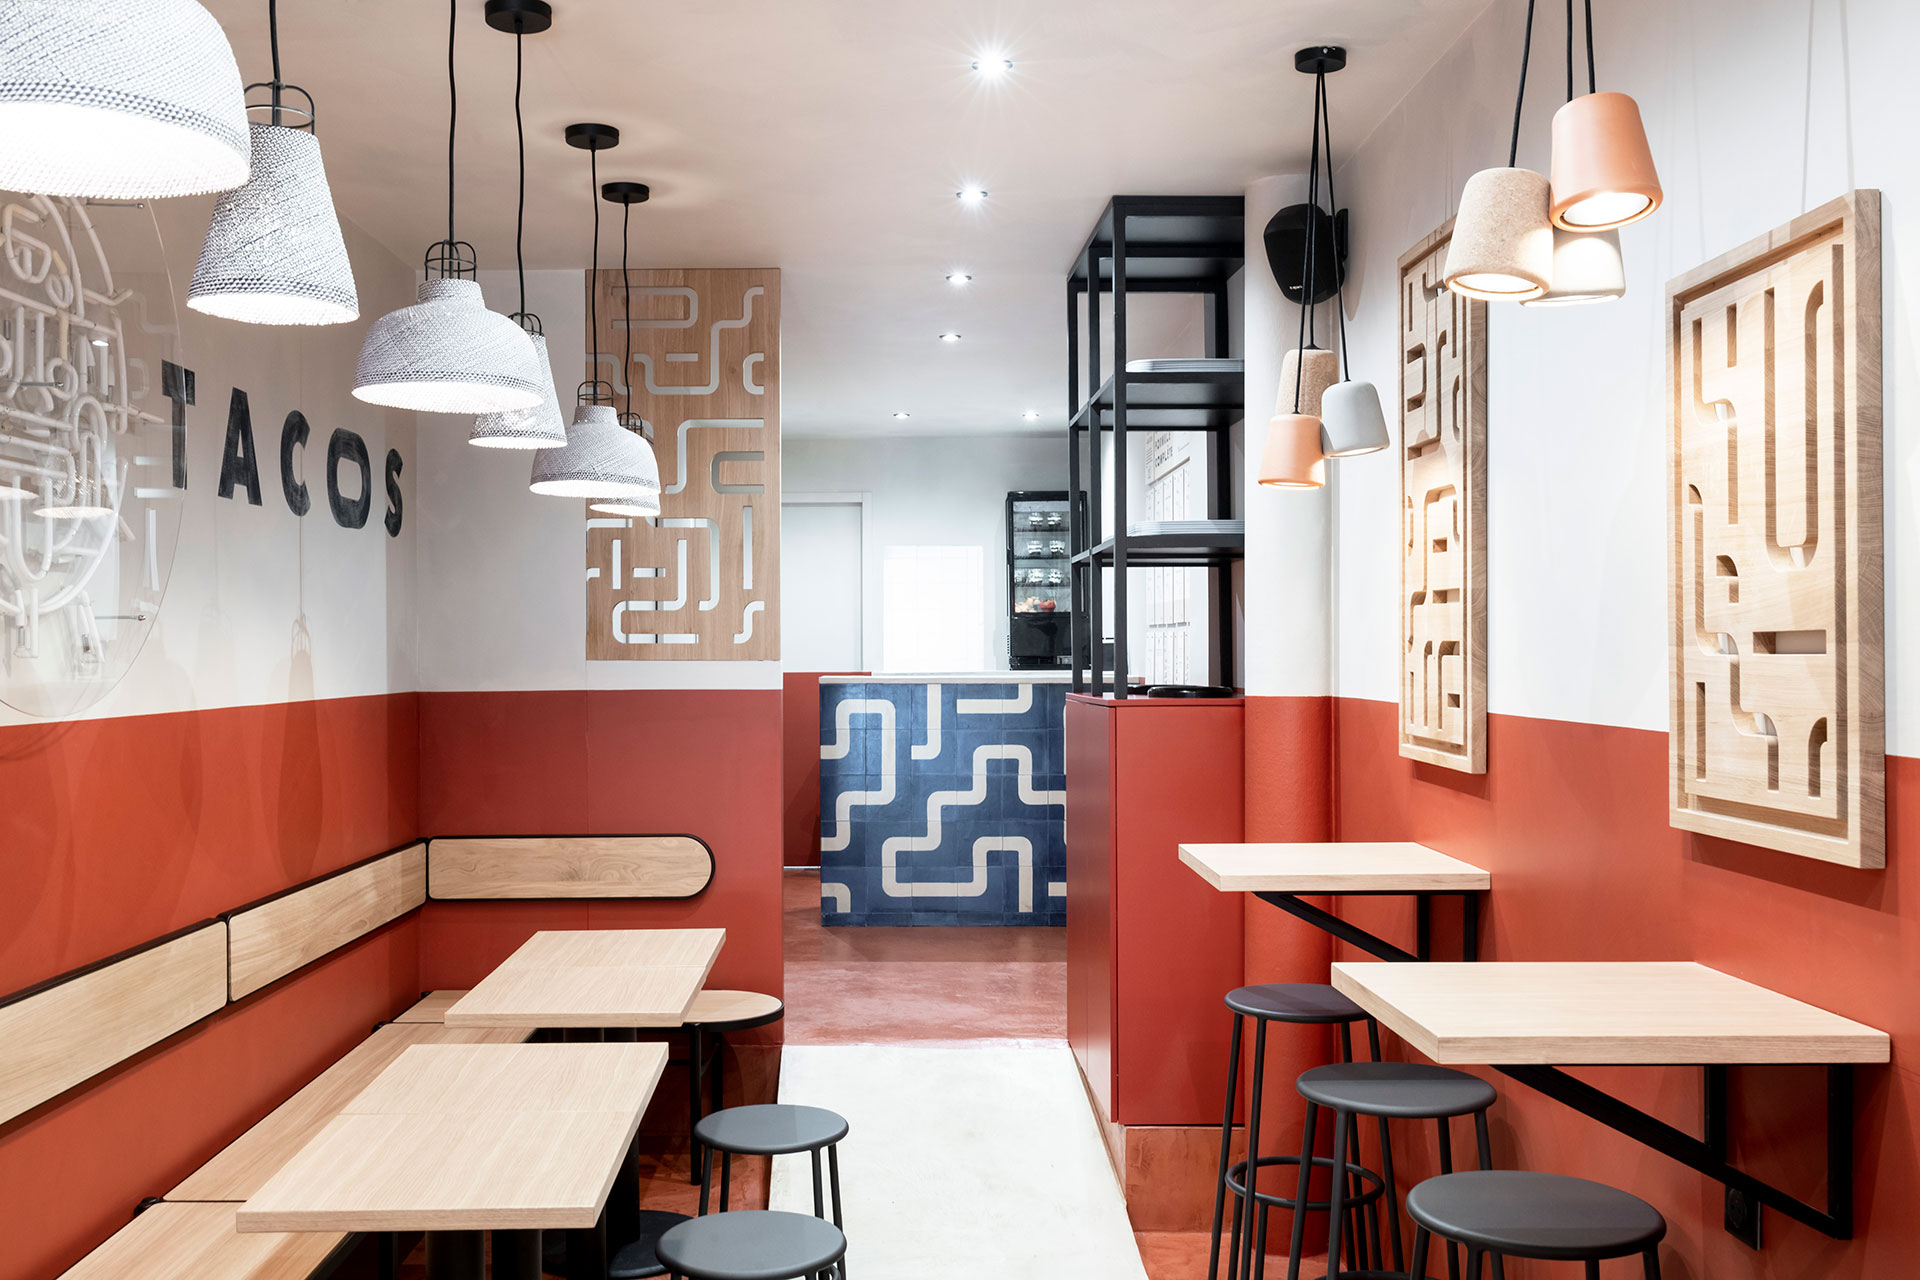 Papas tacos - restaurant - Bordeaux - identity - interior architecture - graphic